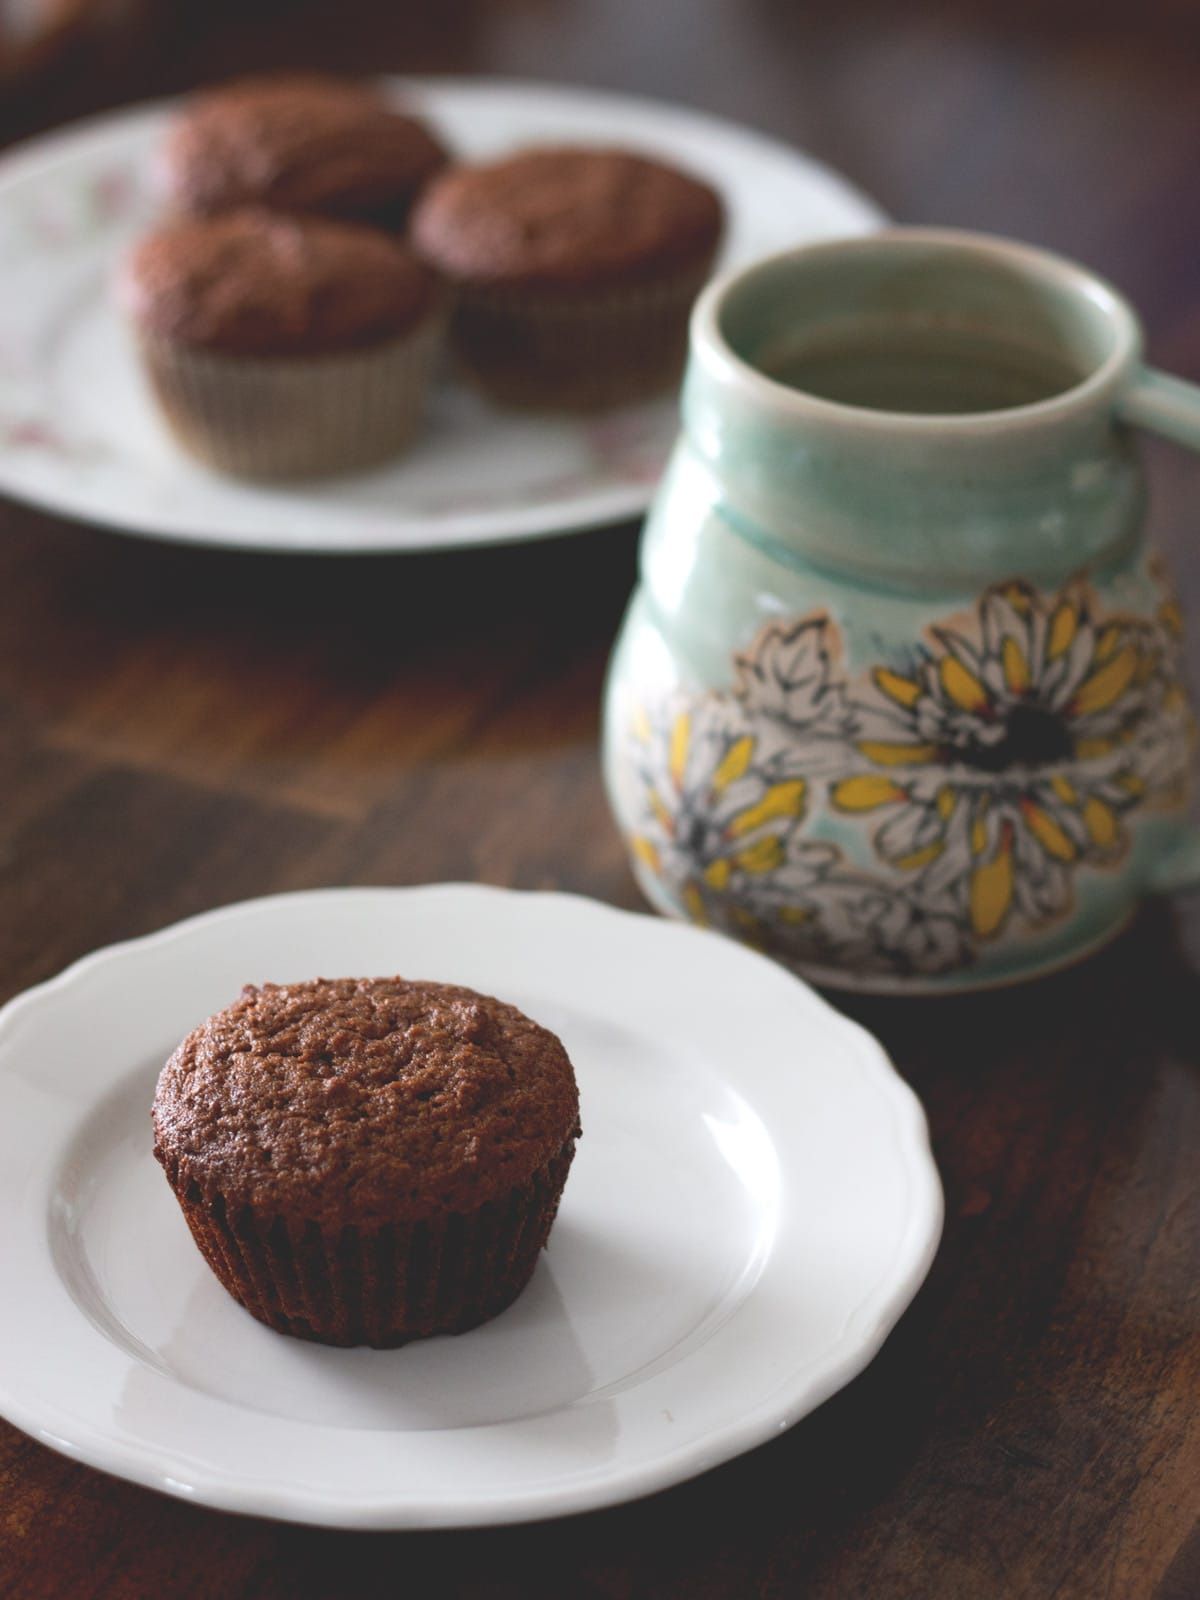 Healthy and Low-Carb Gingerbread Muffins - Delicious and warmly spiced muffins that your will love. Paleo-friendly